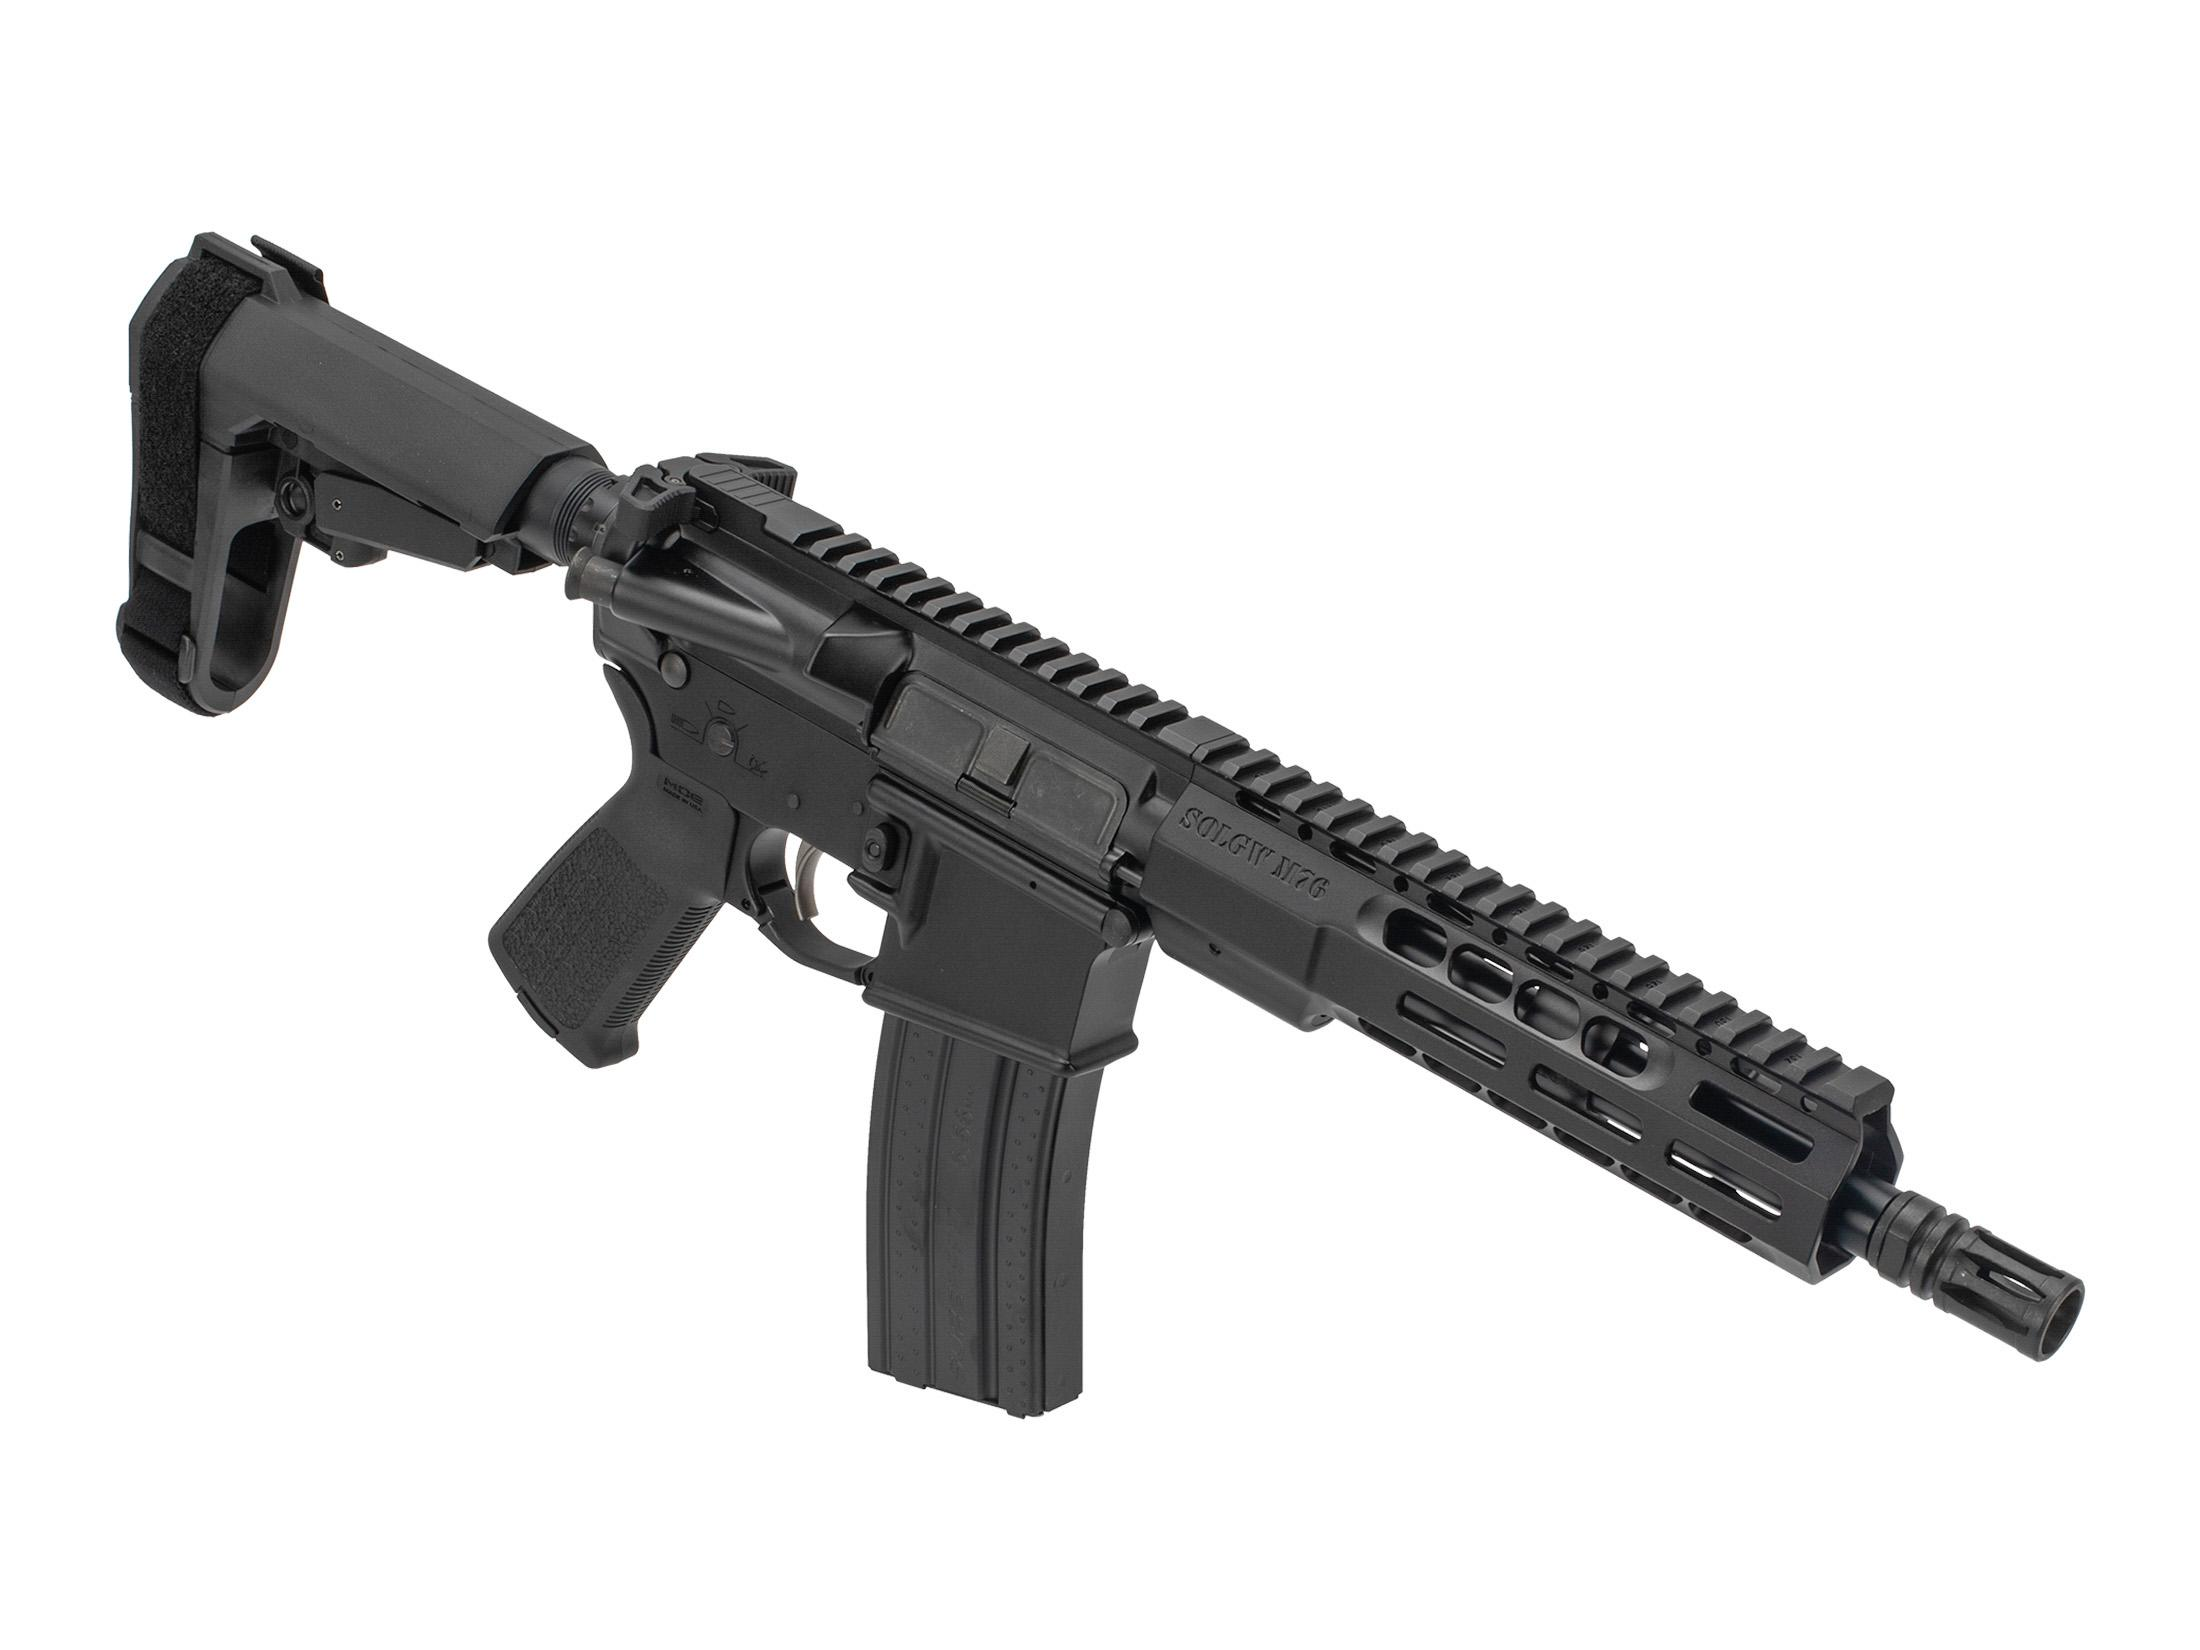 Sons of Liberty Gun Works M4-76 300 BLK Pistol with SBA3 - 9